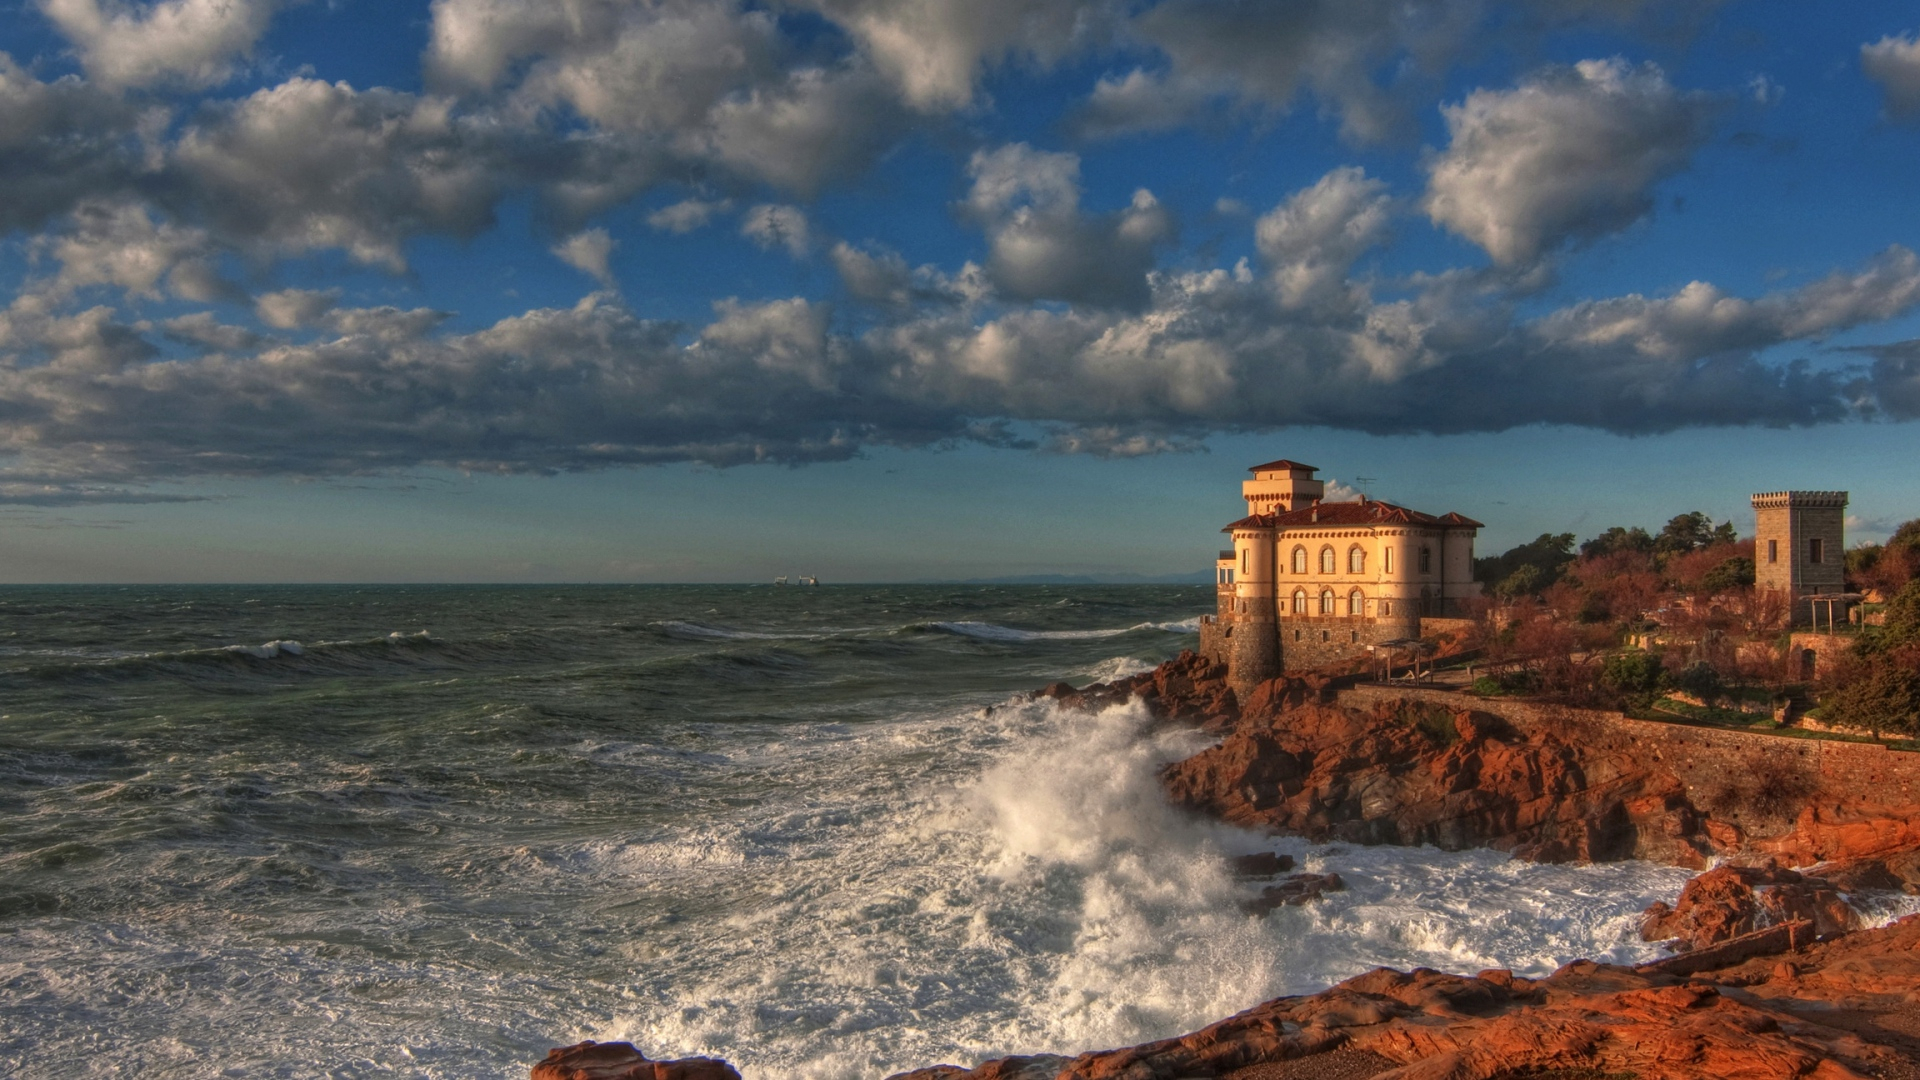 Free Download Boccale Castelo Livorno Nuvens Hdr 4k Hd